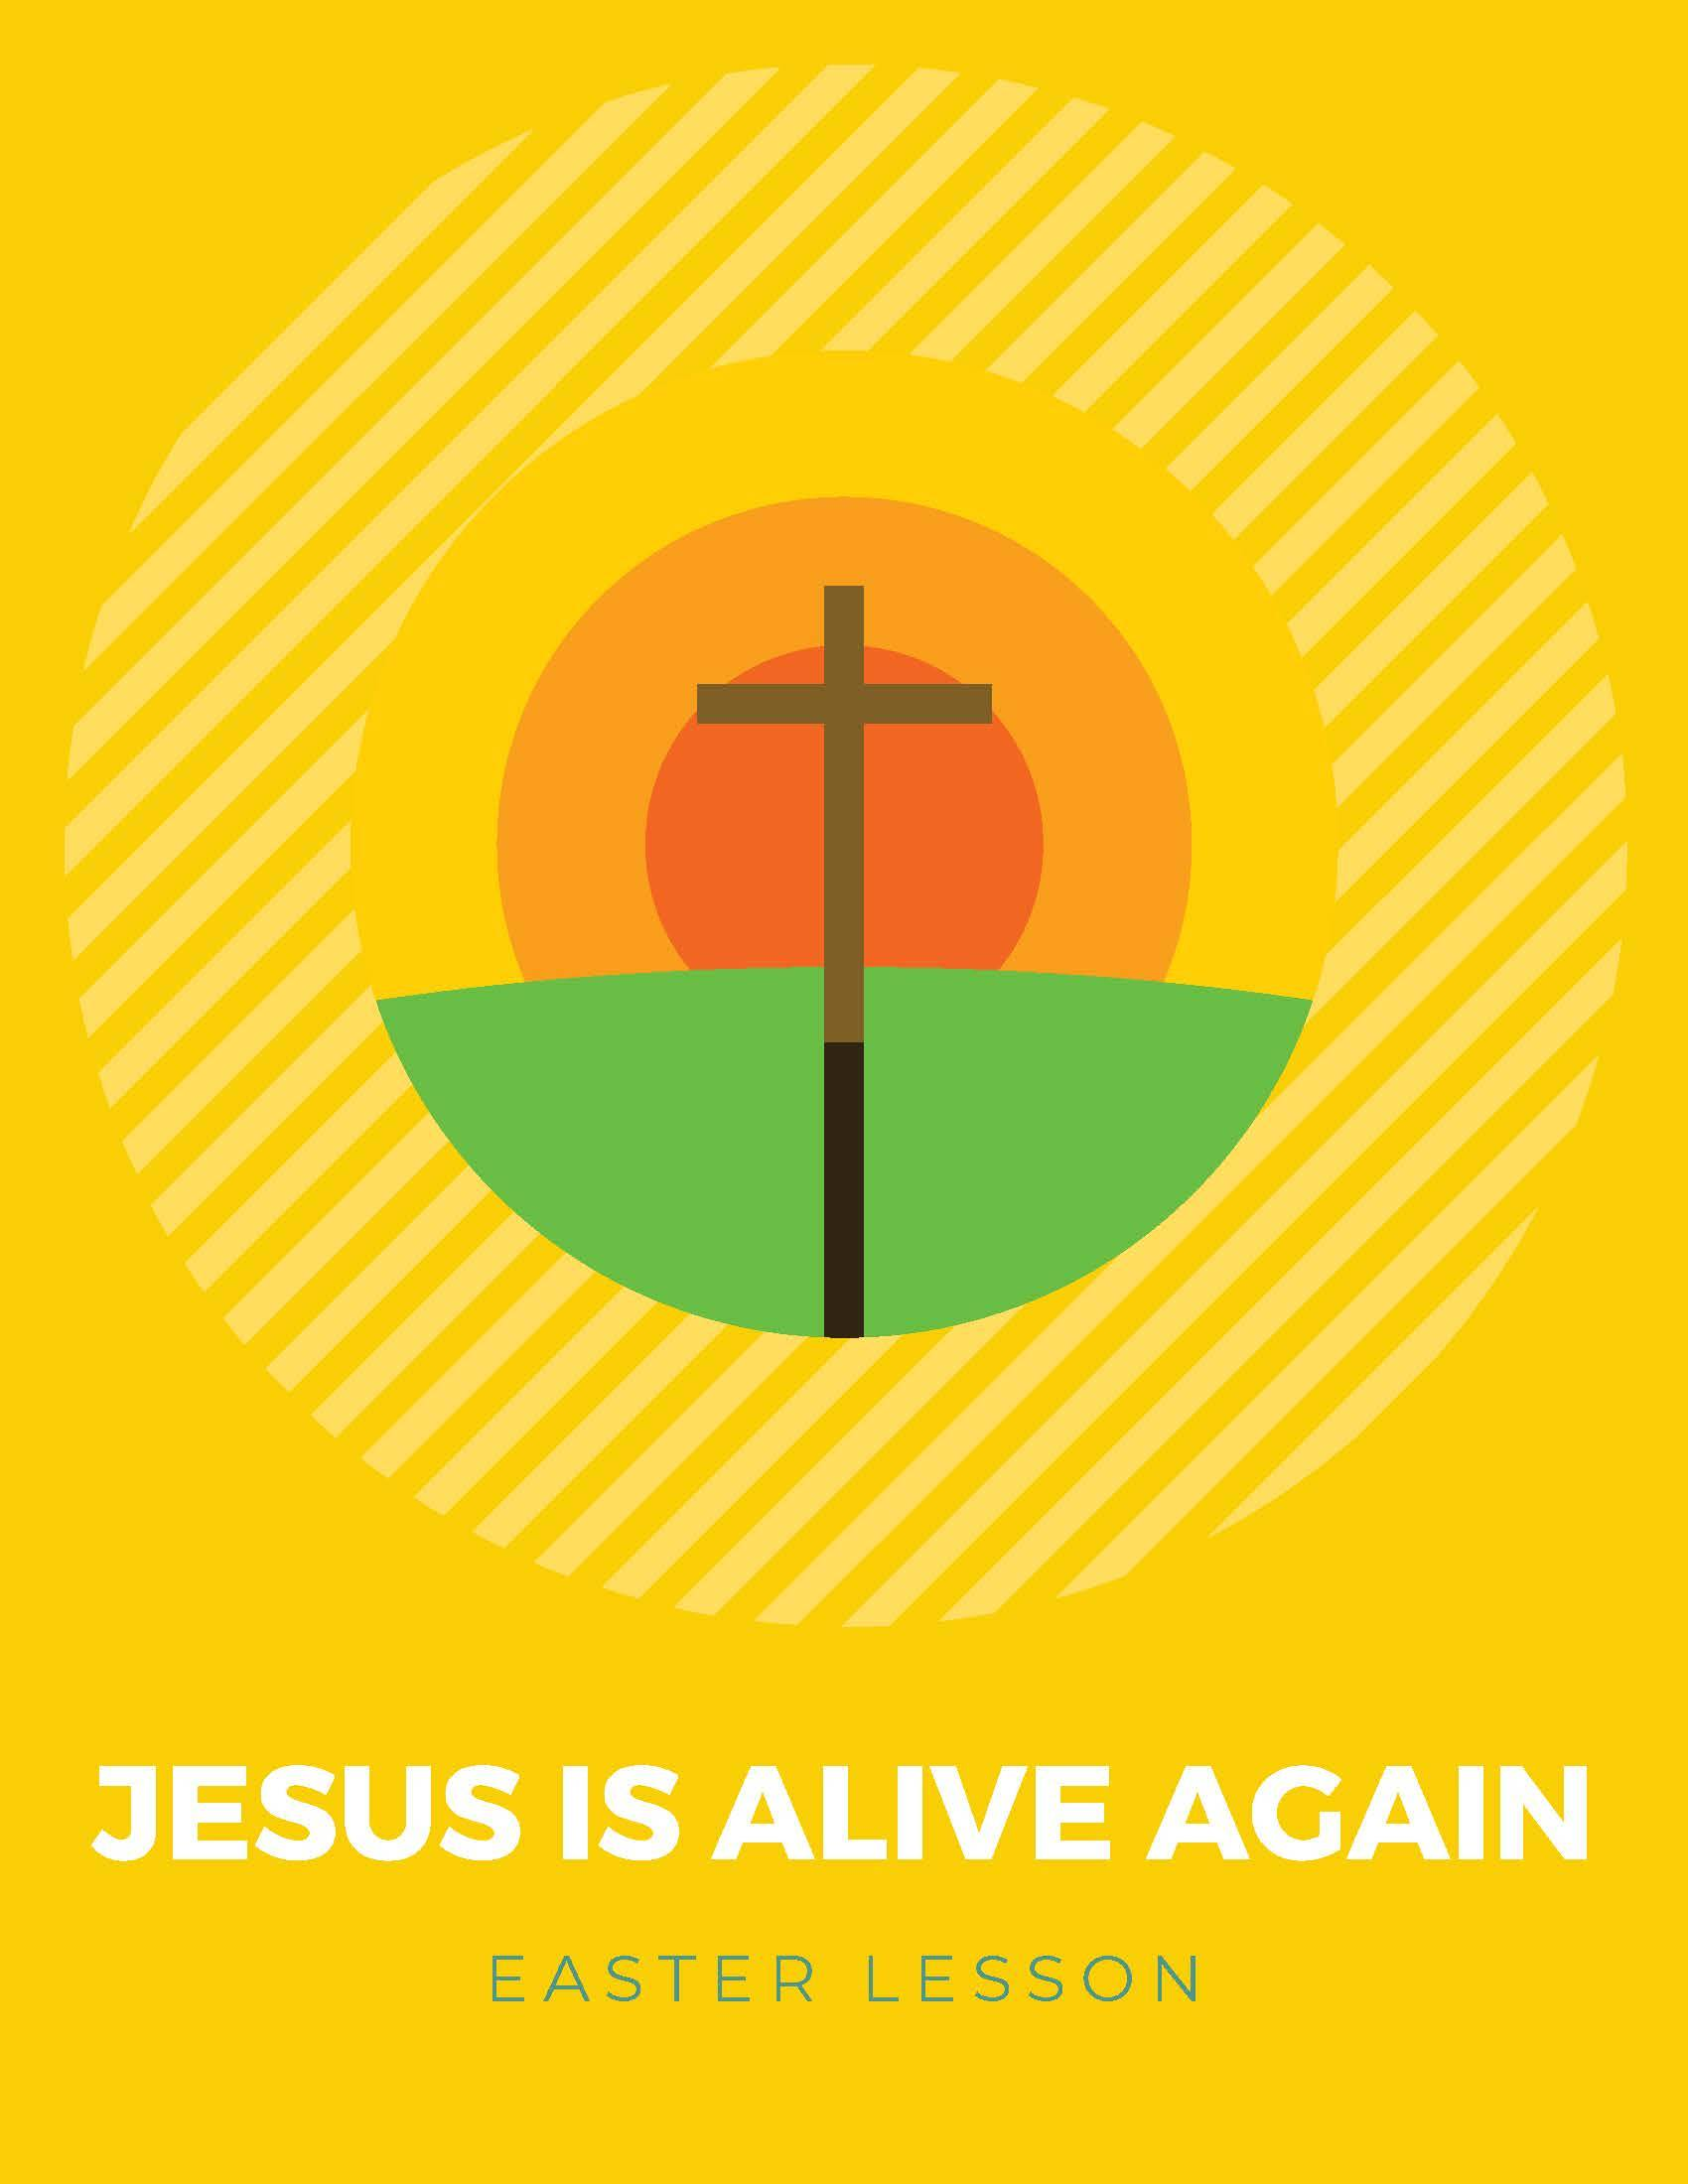 Free Easter Sunday School Lesson for Kids - Jesus is Alive Again